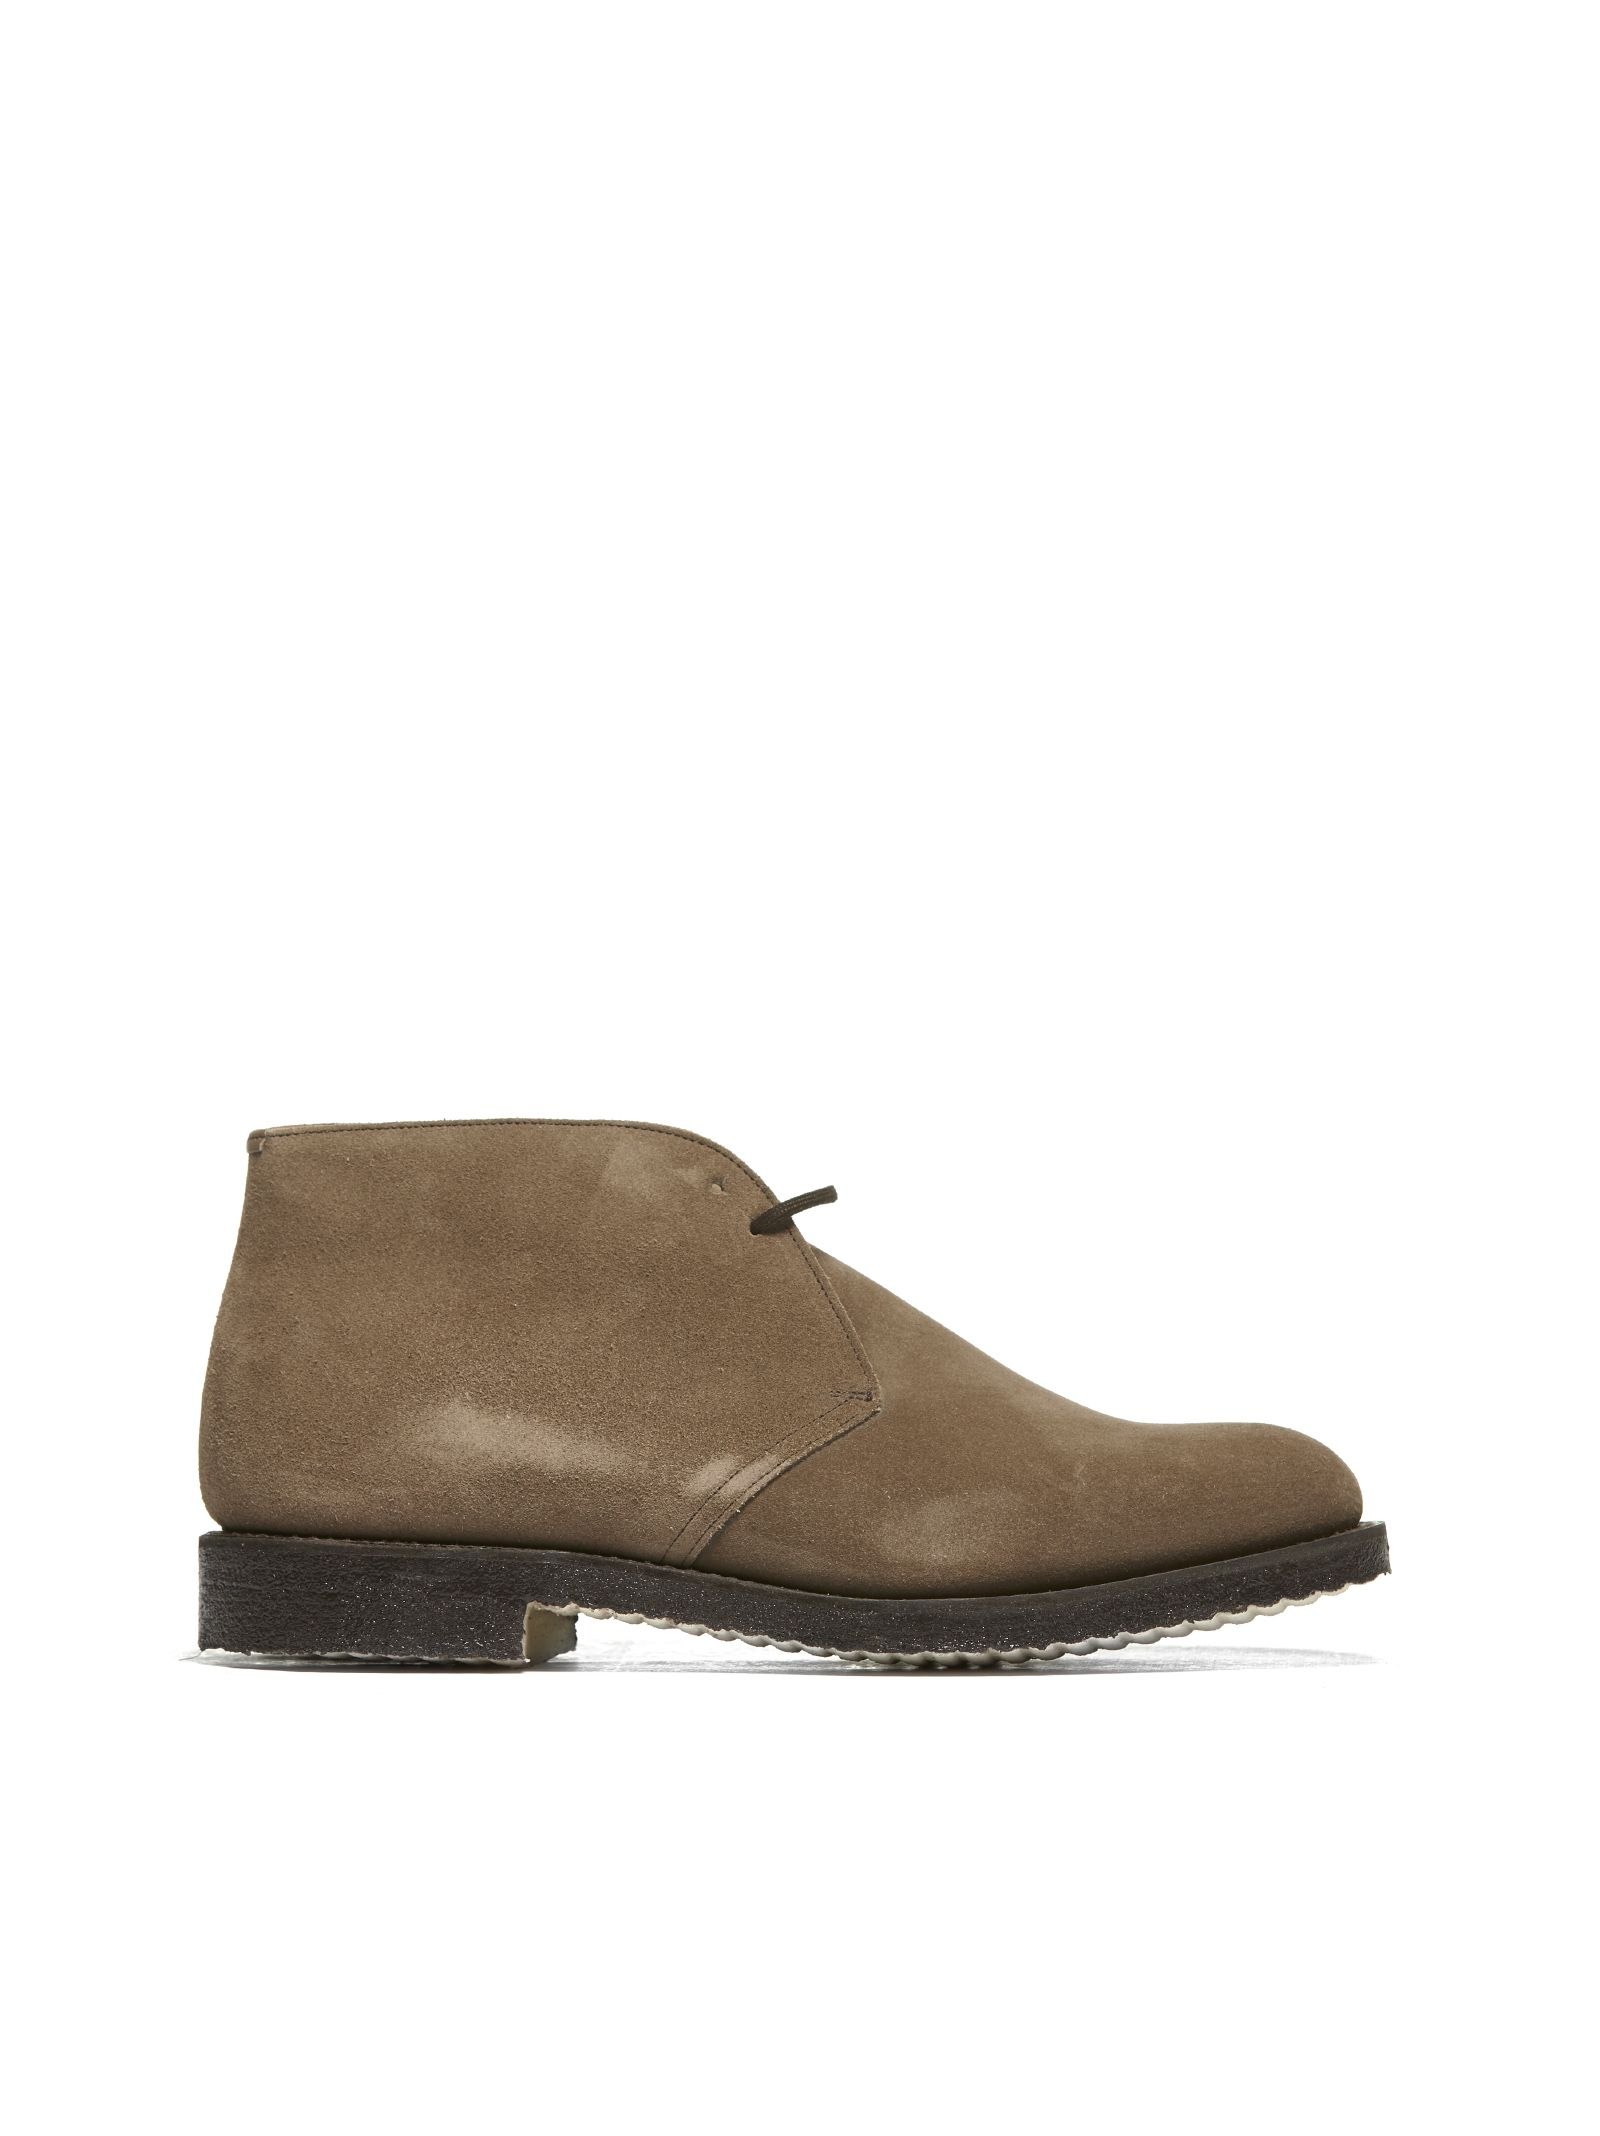 CHURCH'S CLASSIC ANKLE BOOTS